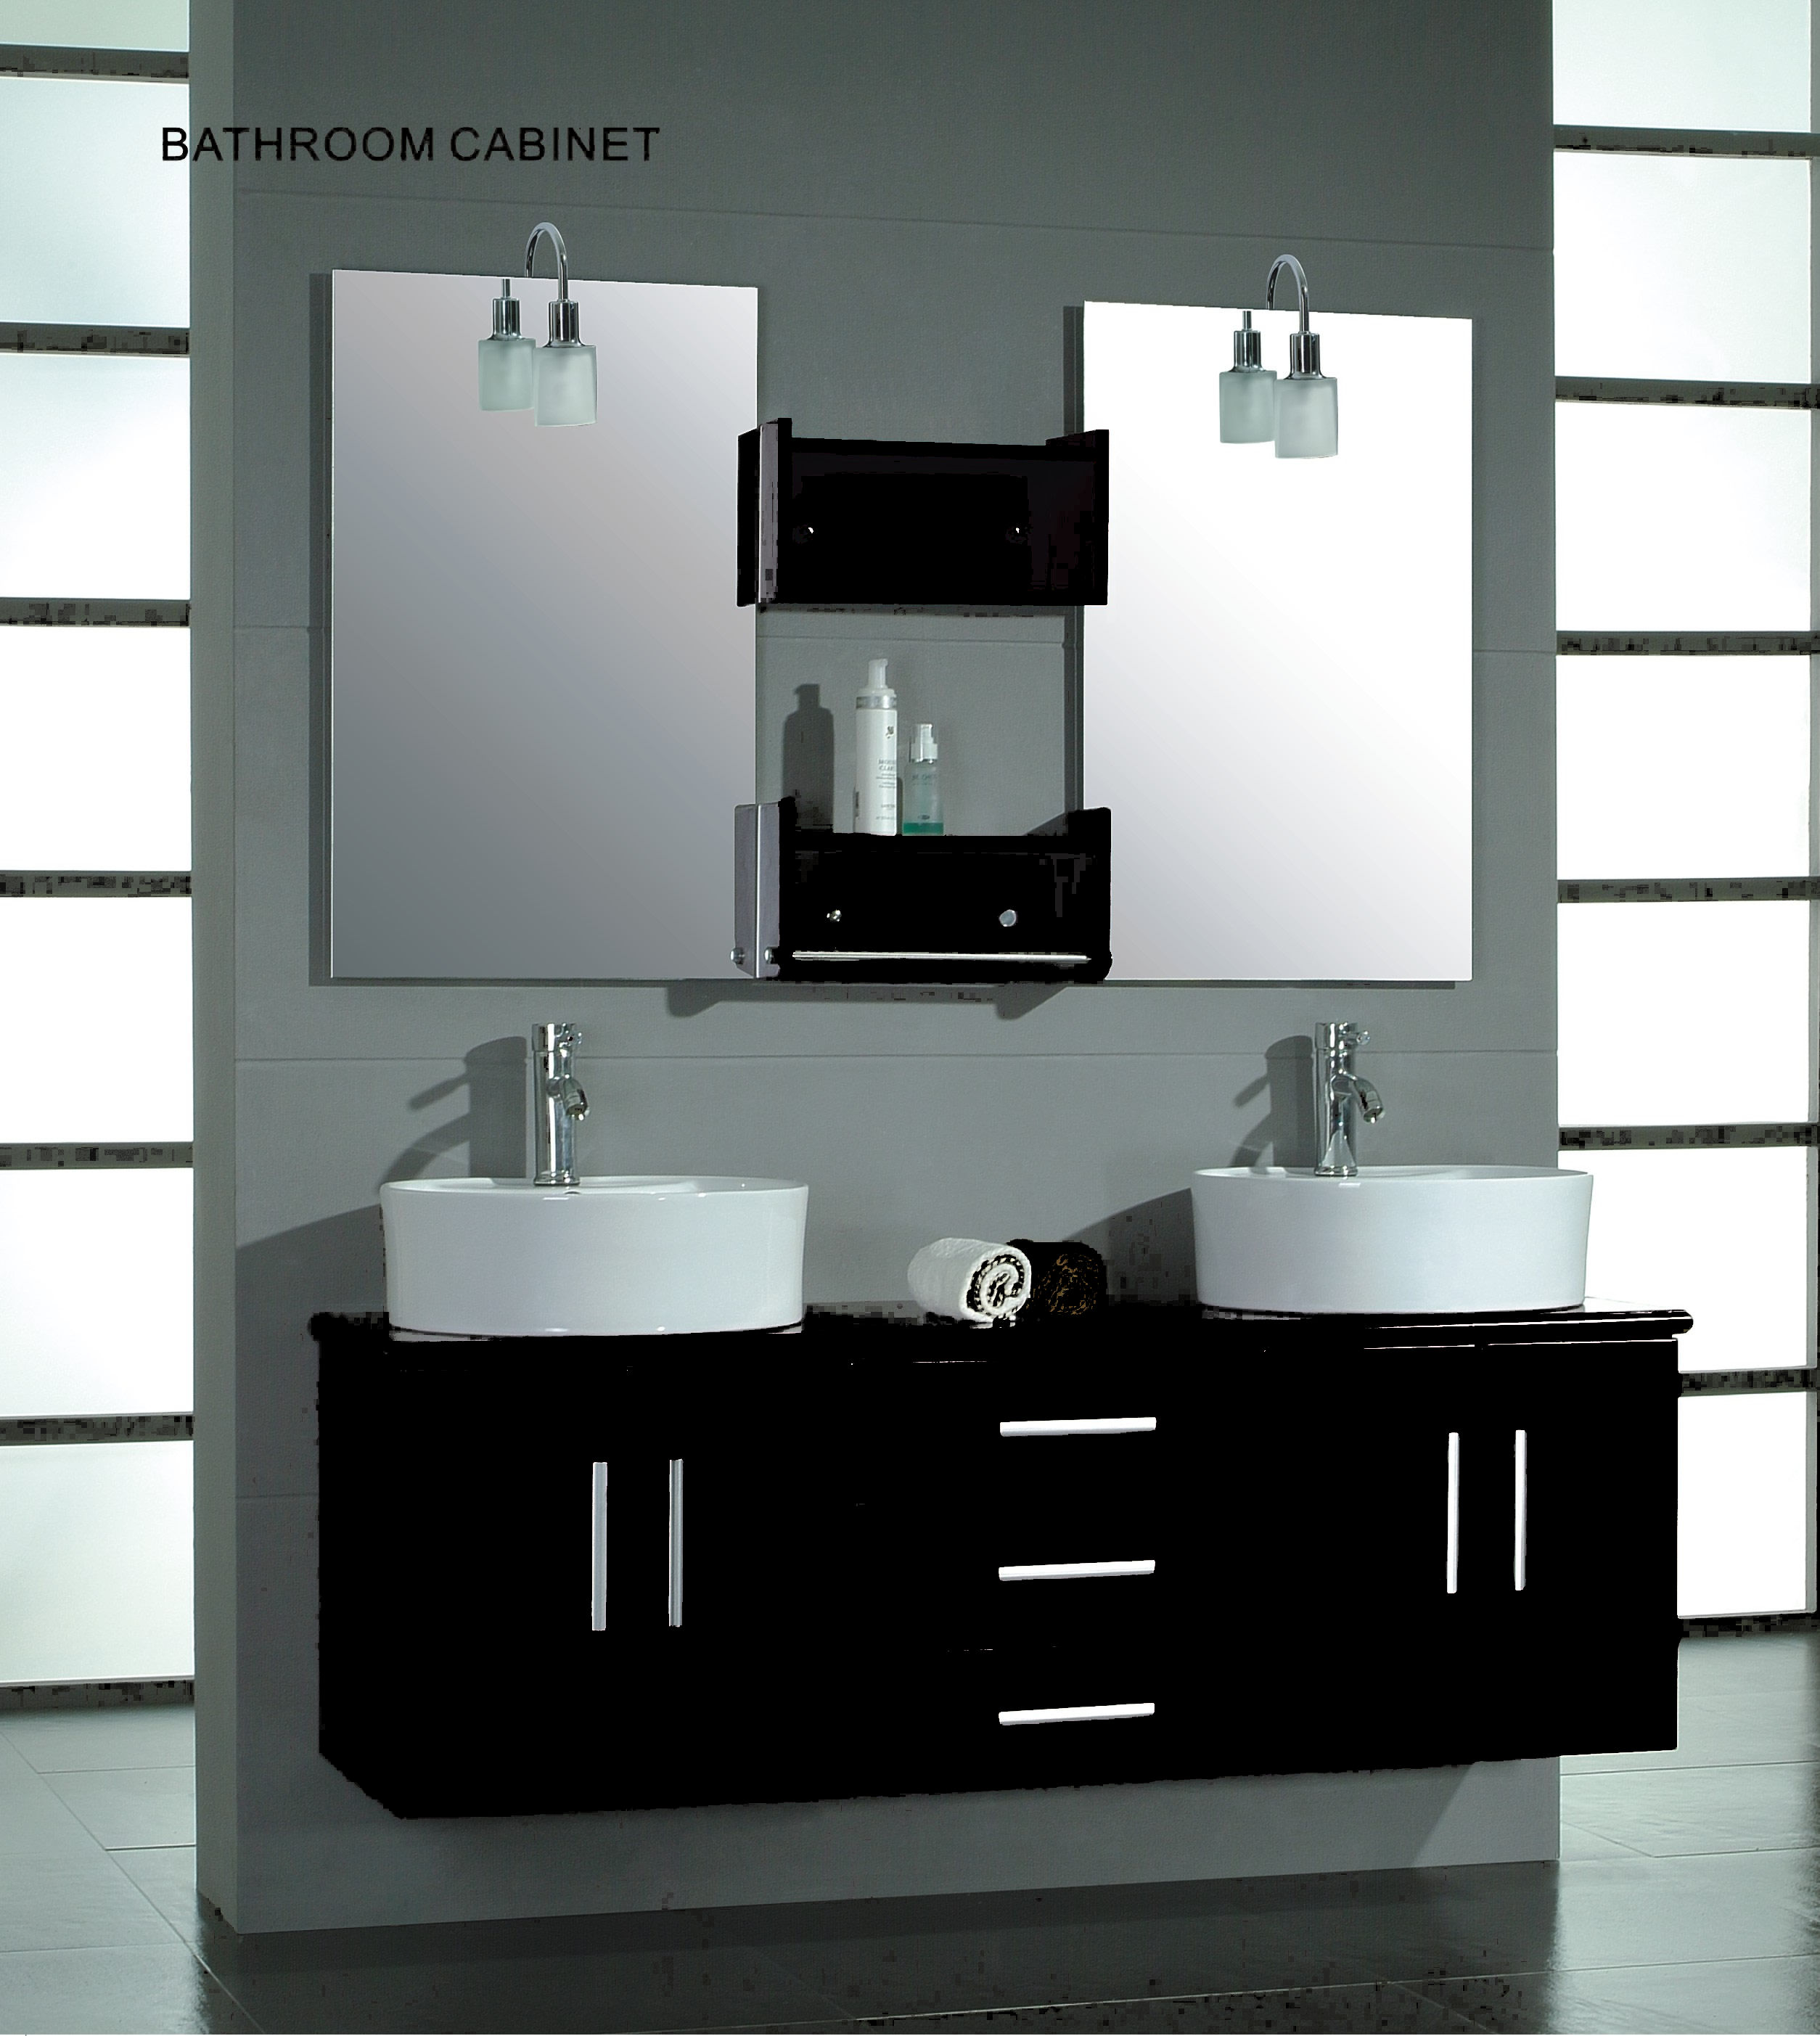 vanity vanities baths slate abigail naos grey collections mount bathroom carrara with sizes img cabinet bianco wall